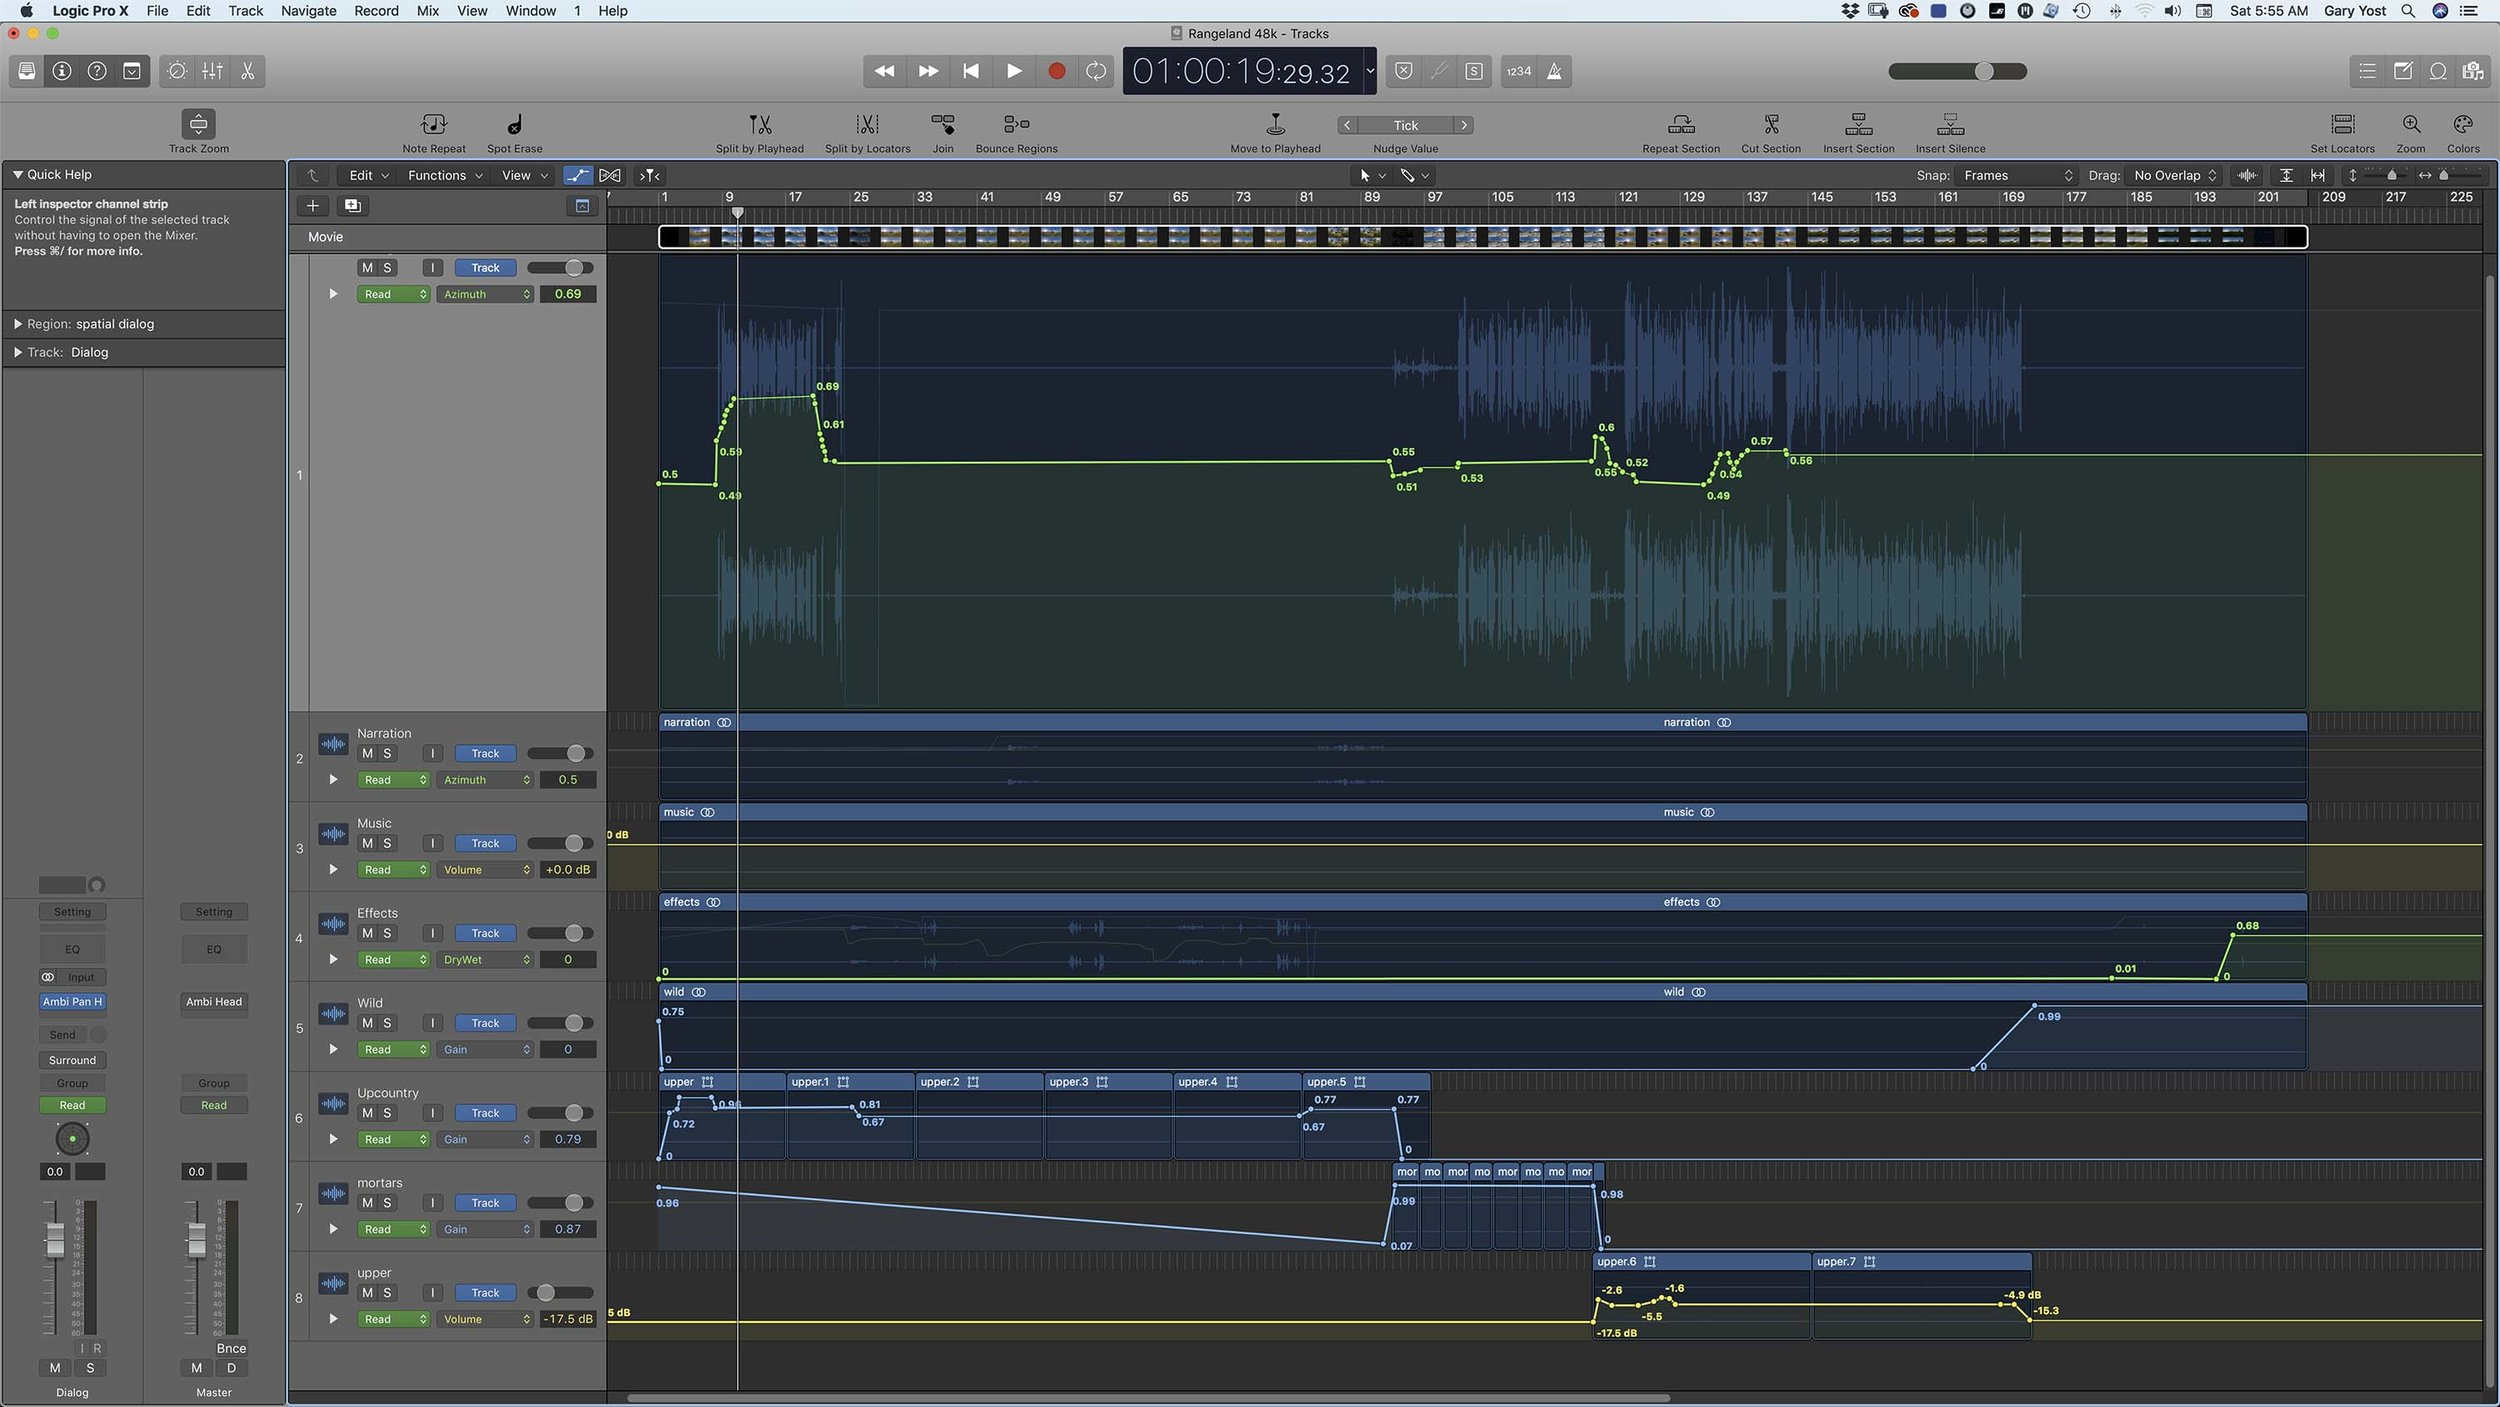 Apple Logic UI showing the dialog track with azimuth keyframes.